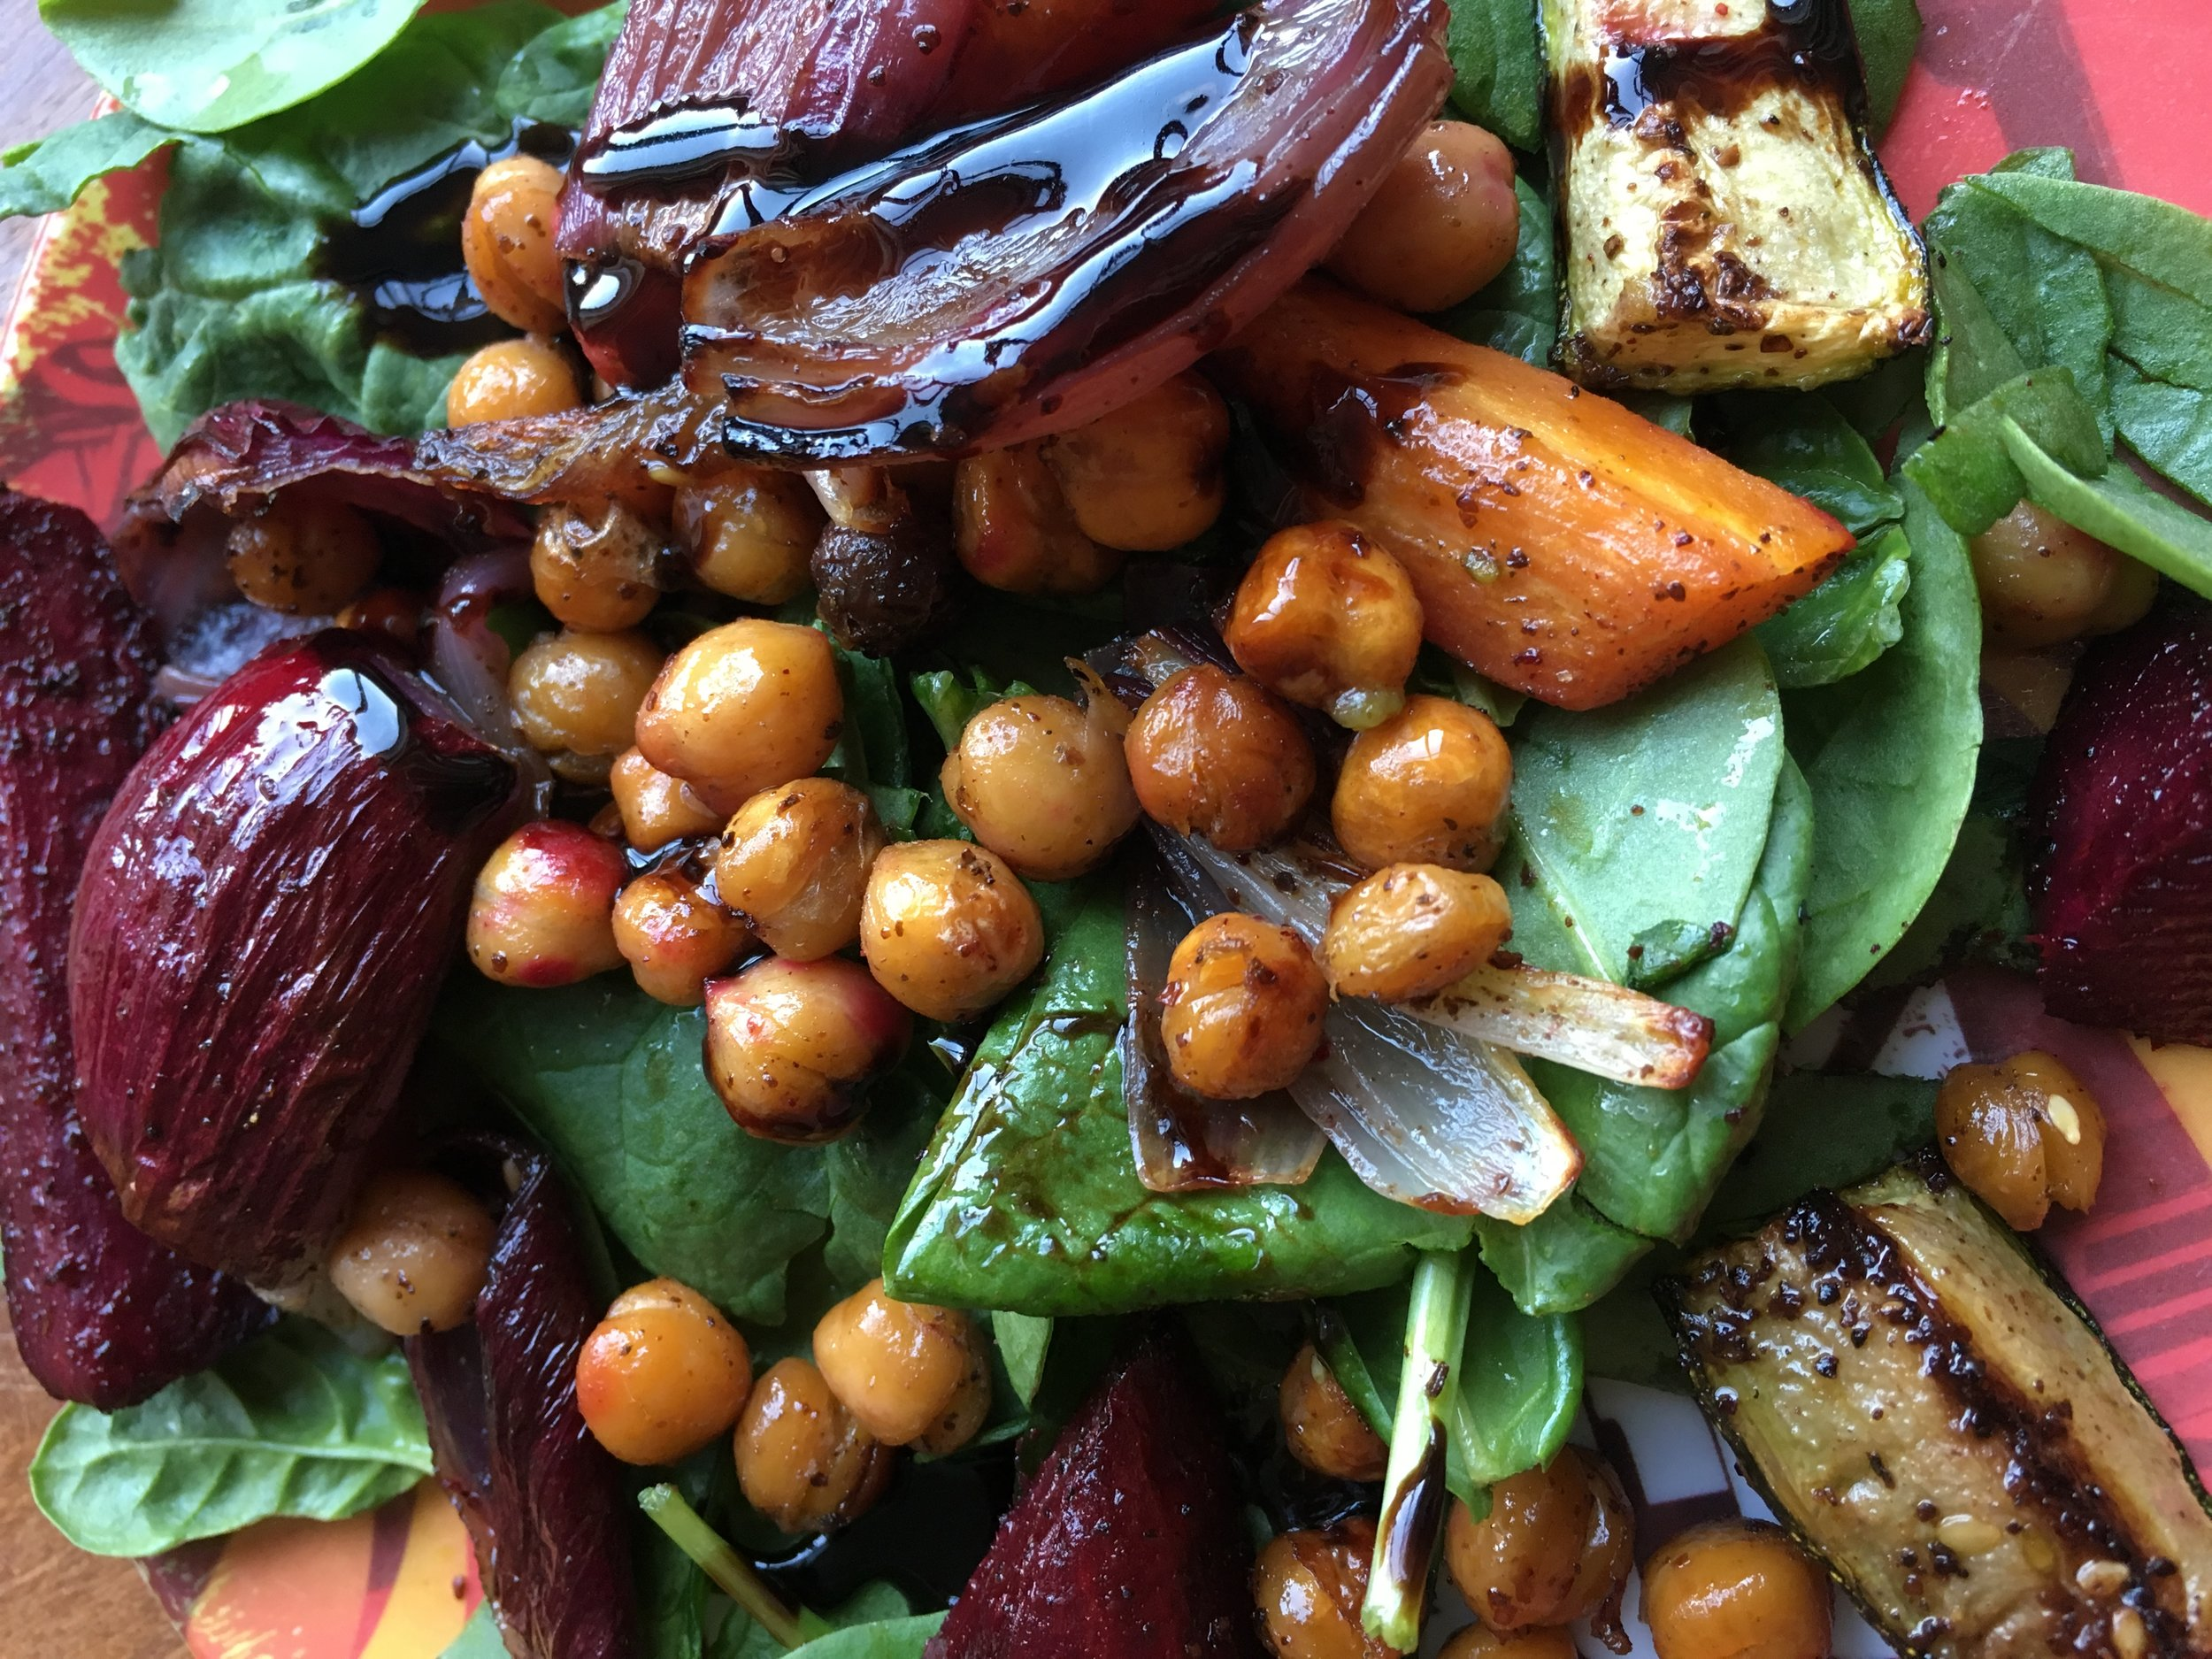 roasted vegetables and chickpeas with balsamic dressing - simple one pan wonder for mid-week